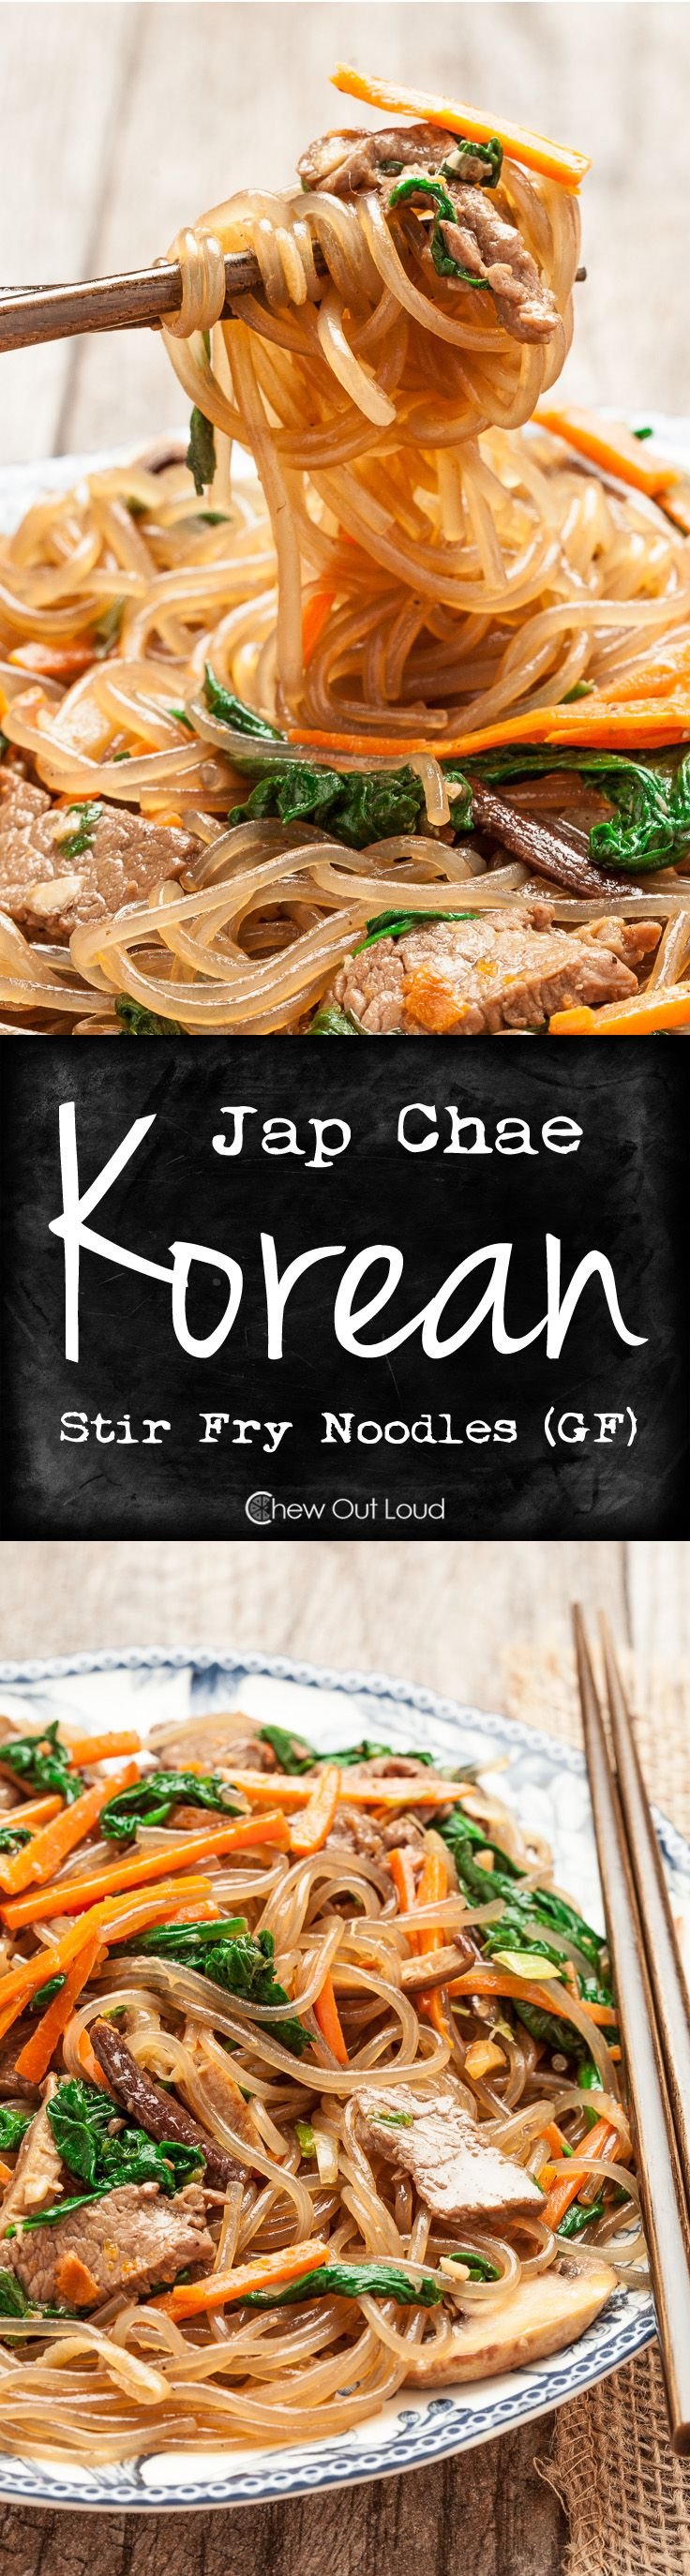 Jap Chae (Korean Stir Fry Noodles - GF) - Healthy, flavorful, chewy, and totally addictive. The first thing to disappear at any potluck. #recipe #asian